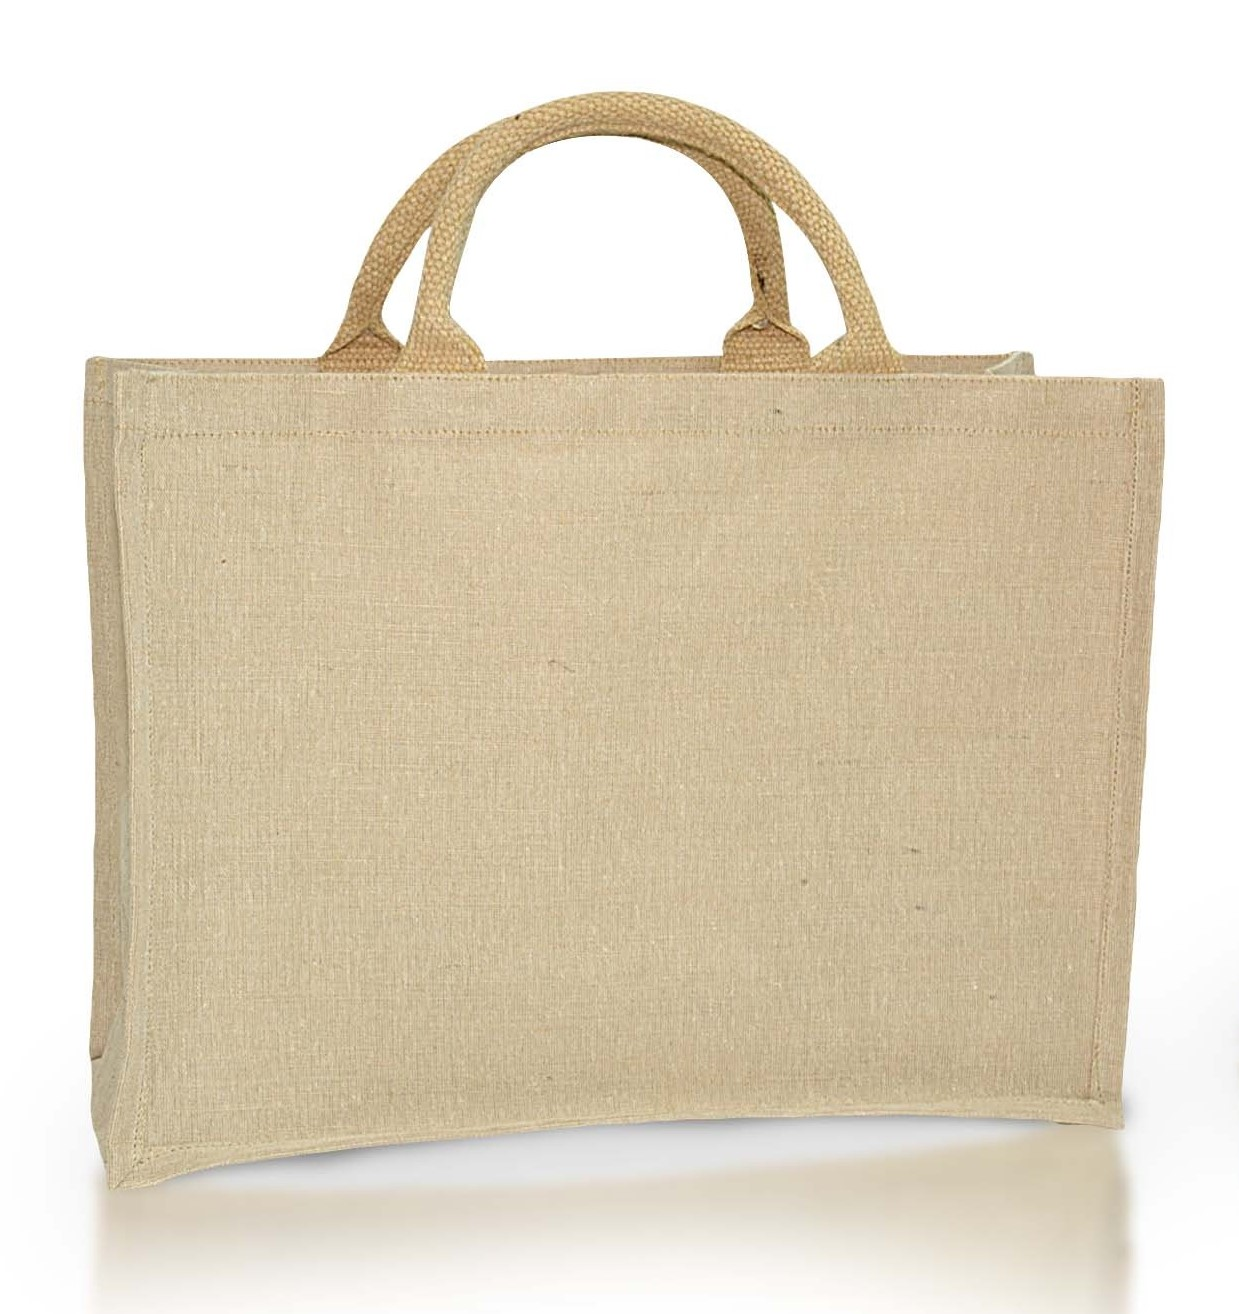 Eco-friendly Bags - Buy Bags Online From Manufacturer, Exporter and